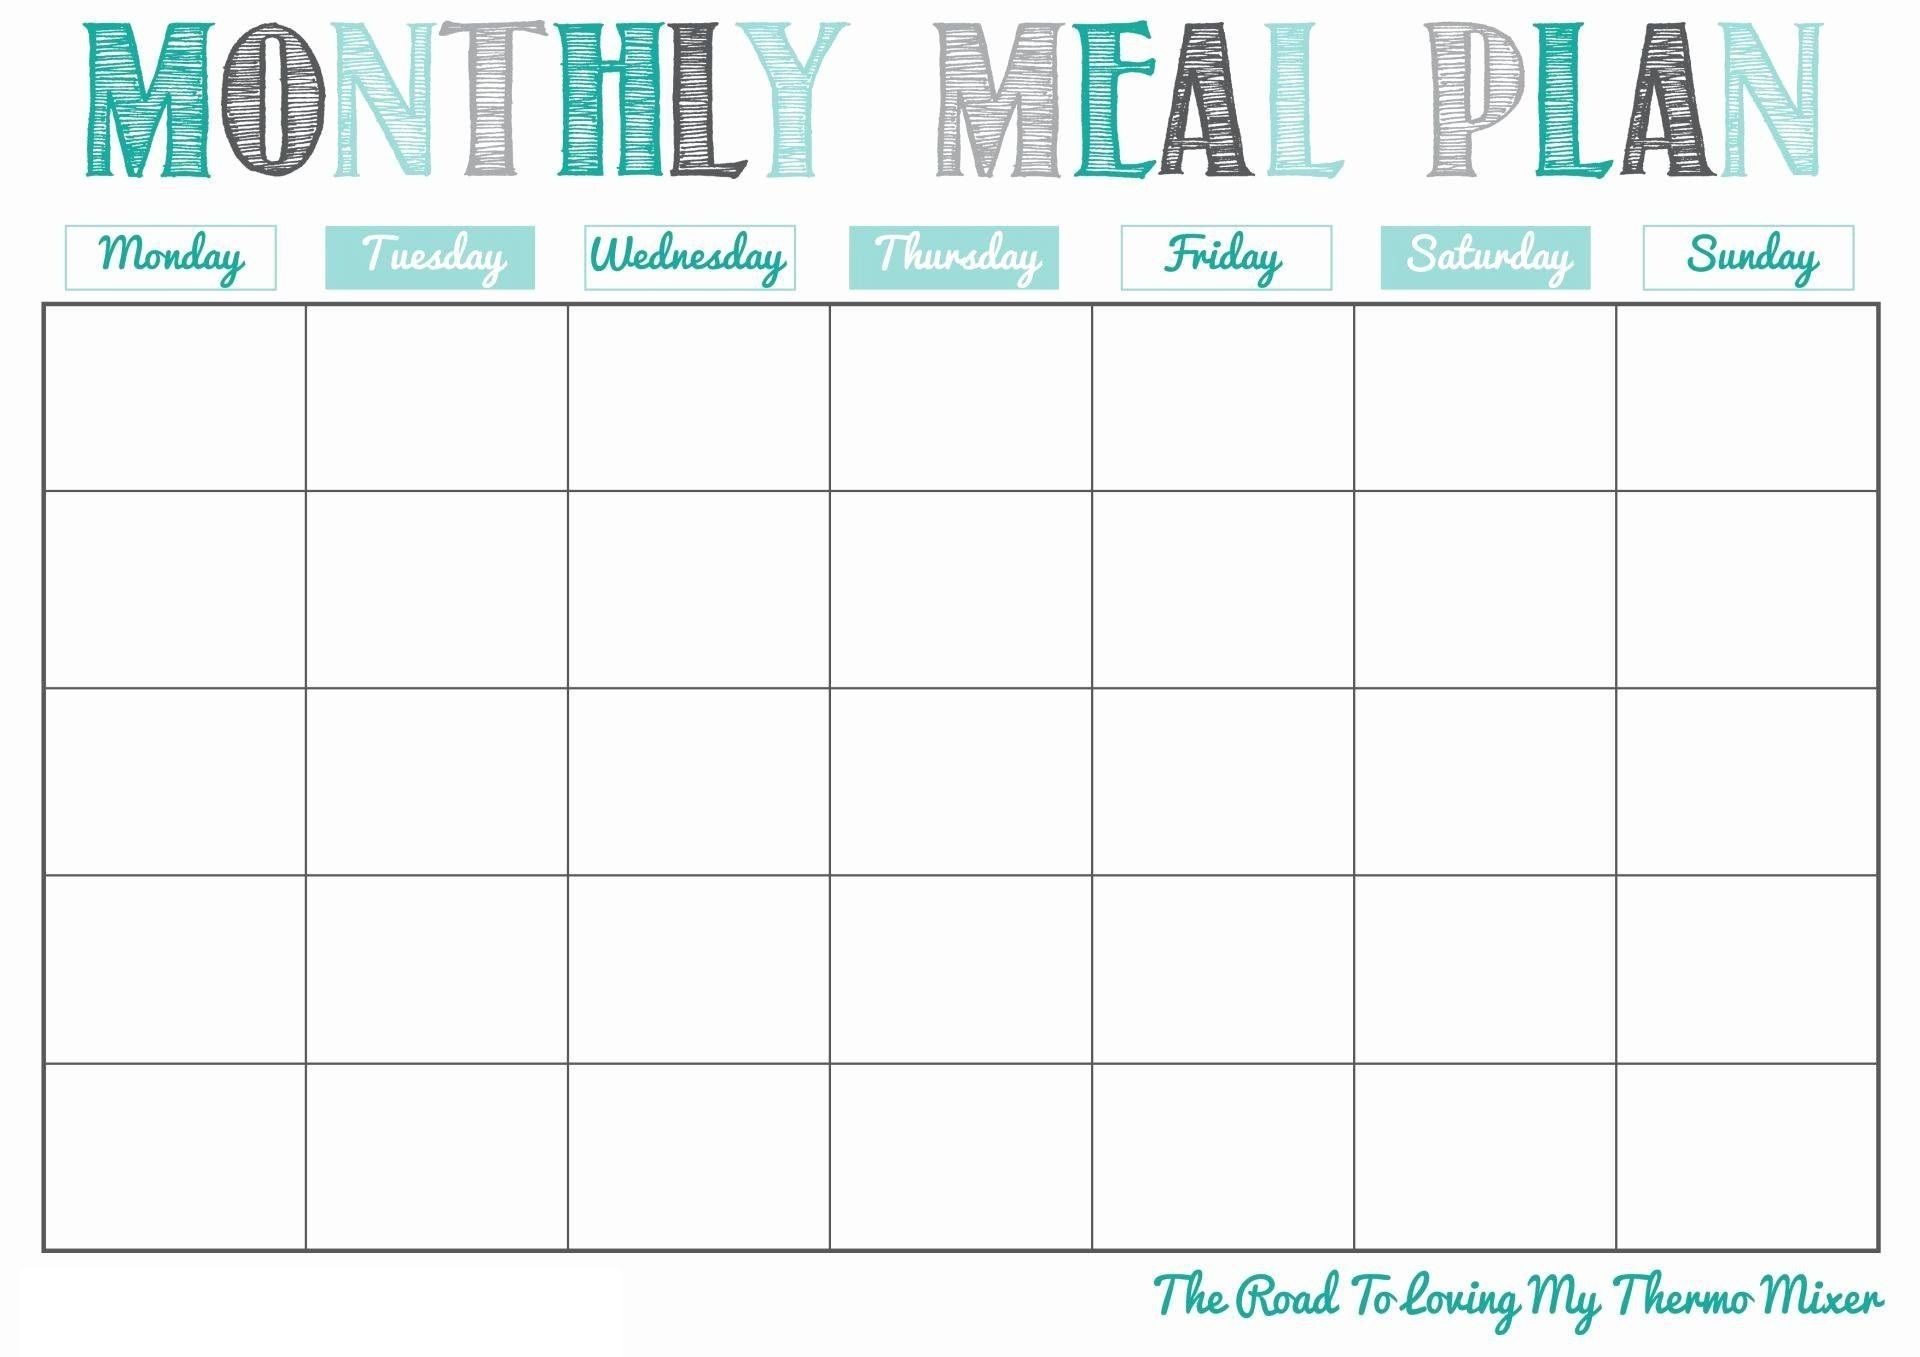 004 Best Meal Plan Calendar Template Highest Quality  Excel Weekly 30 Day1920